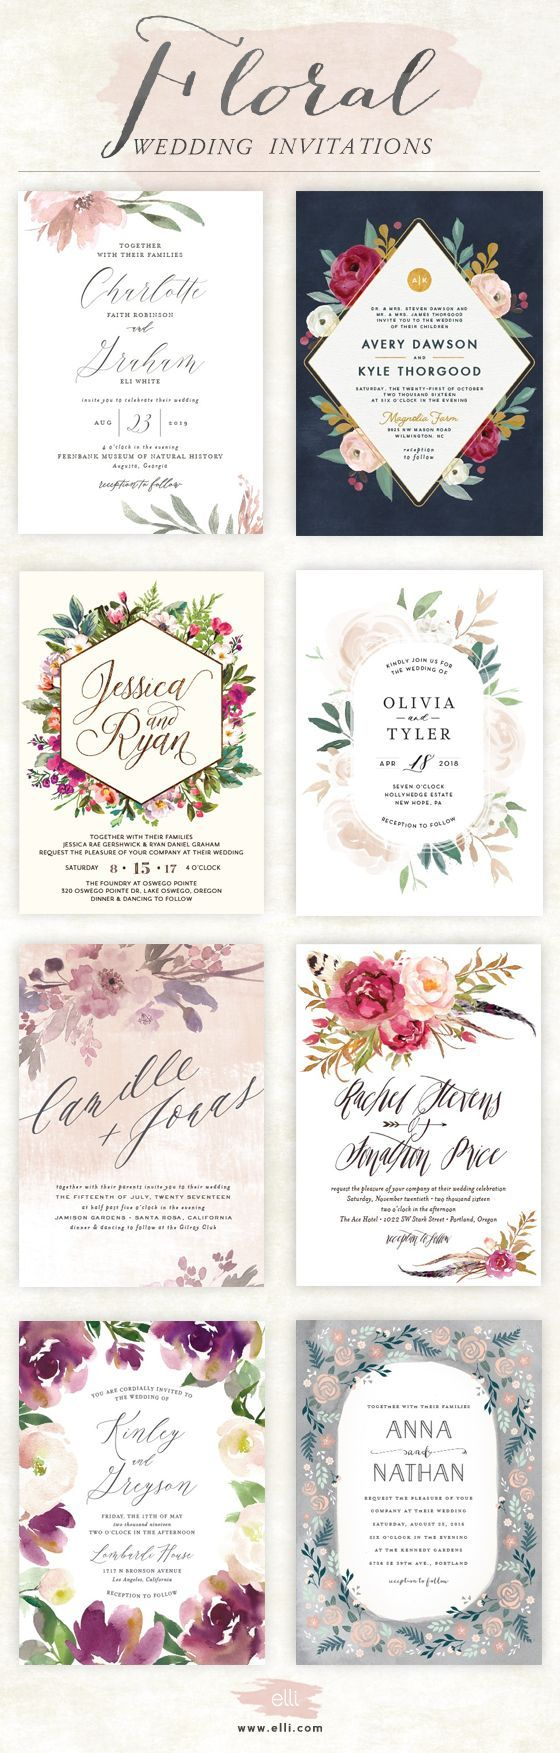 90 Best Garden Wedding Images On Pinterest Wedding Invitation